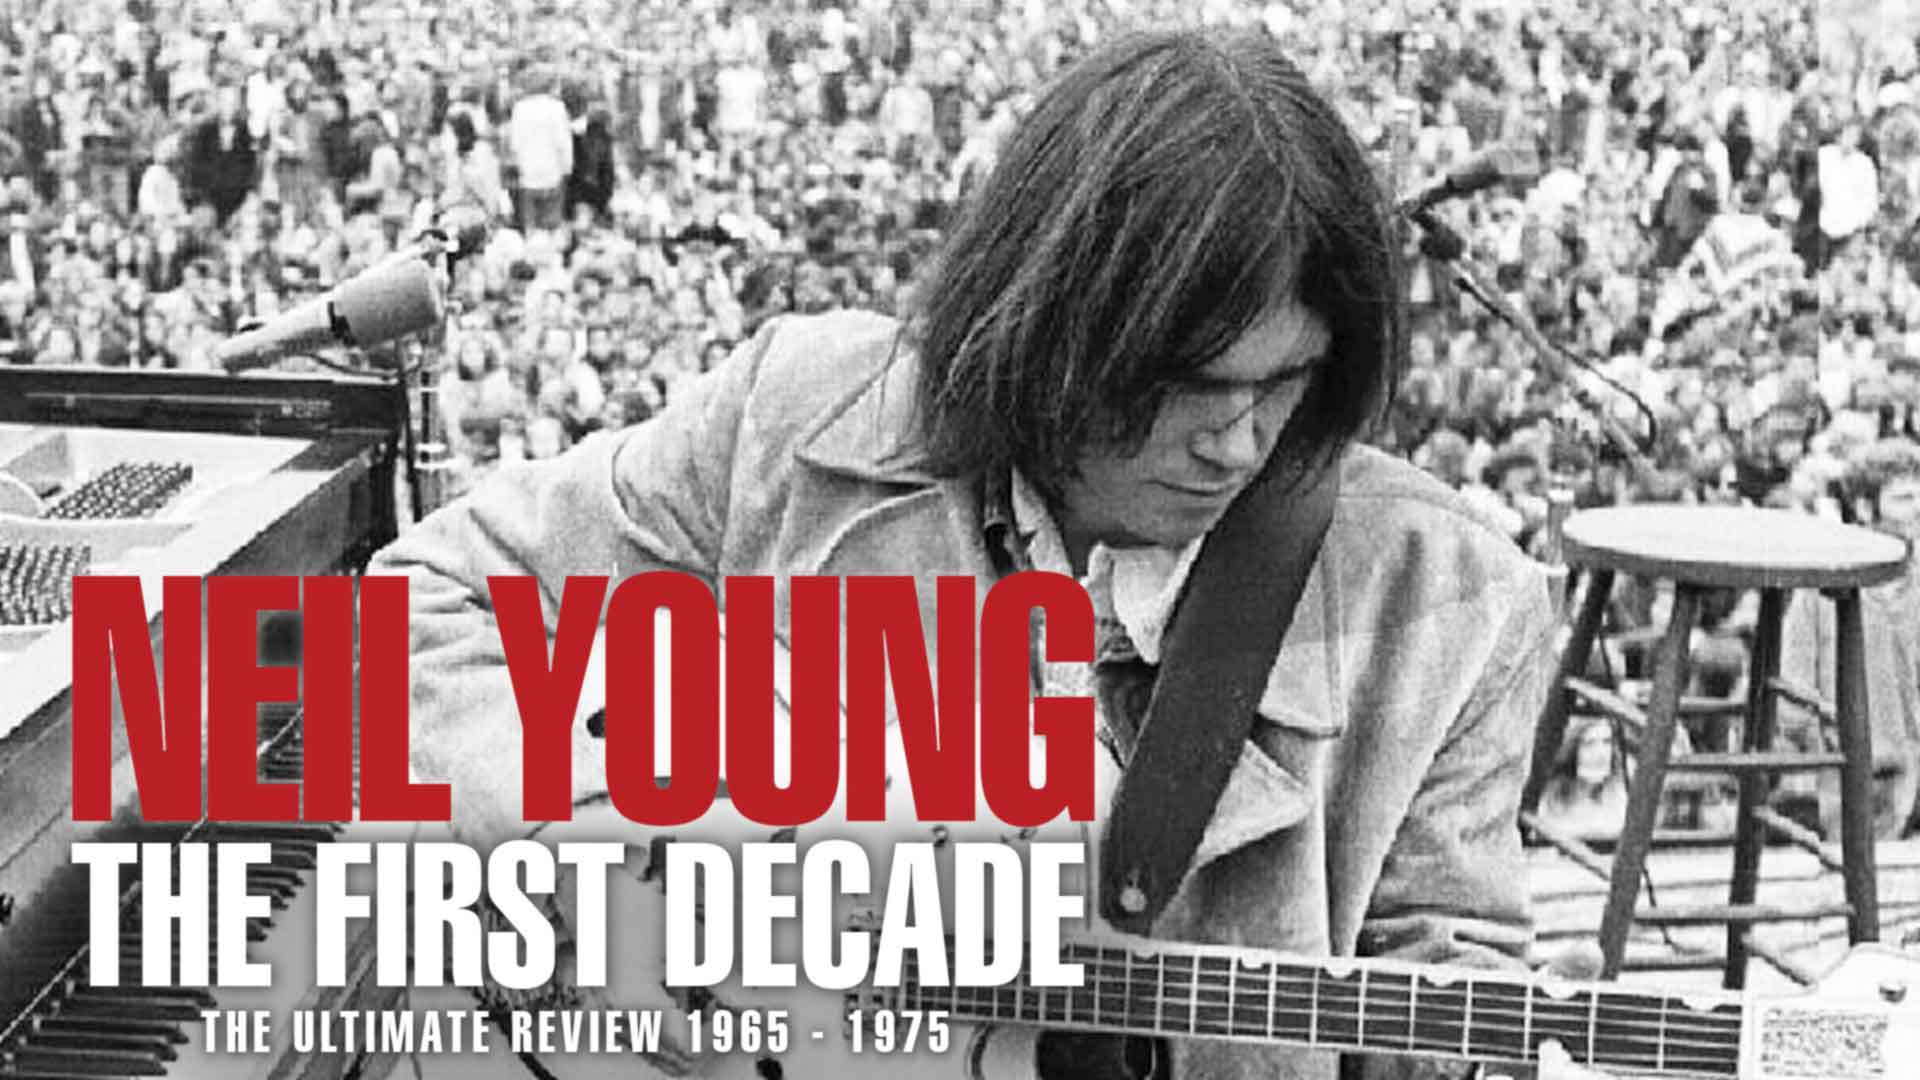 Neil Young: The First Decade